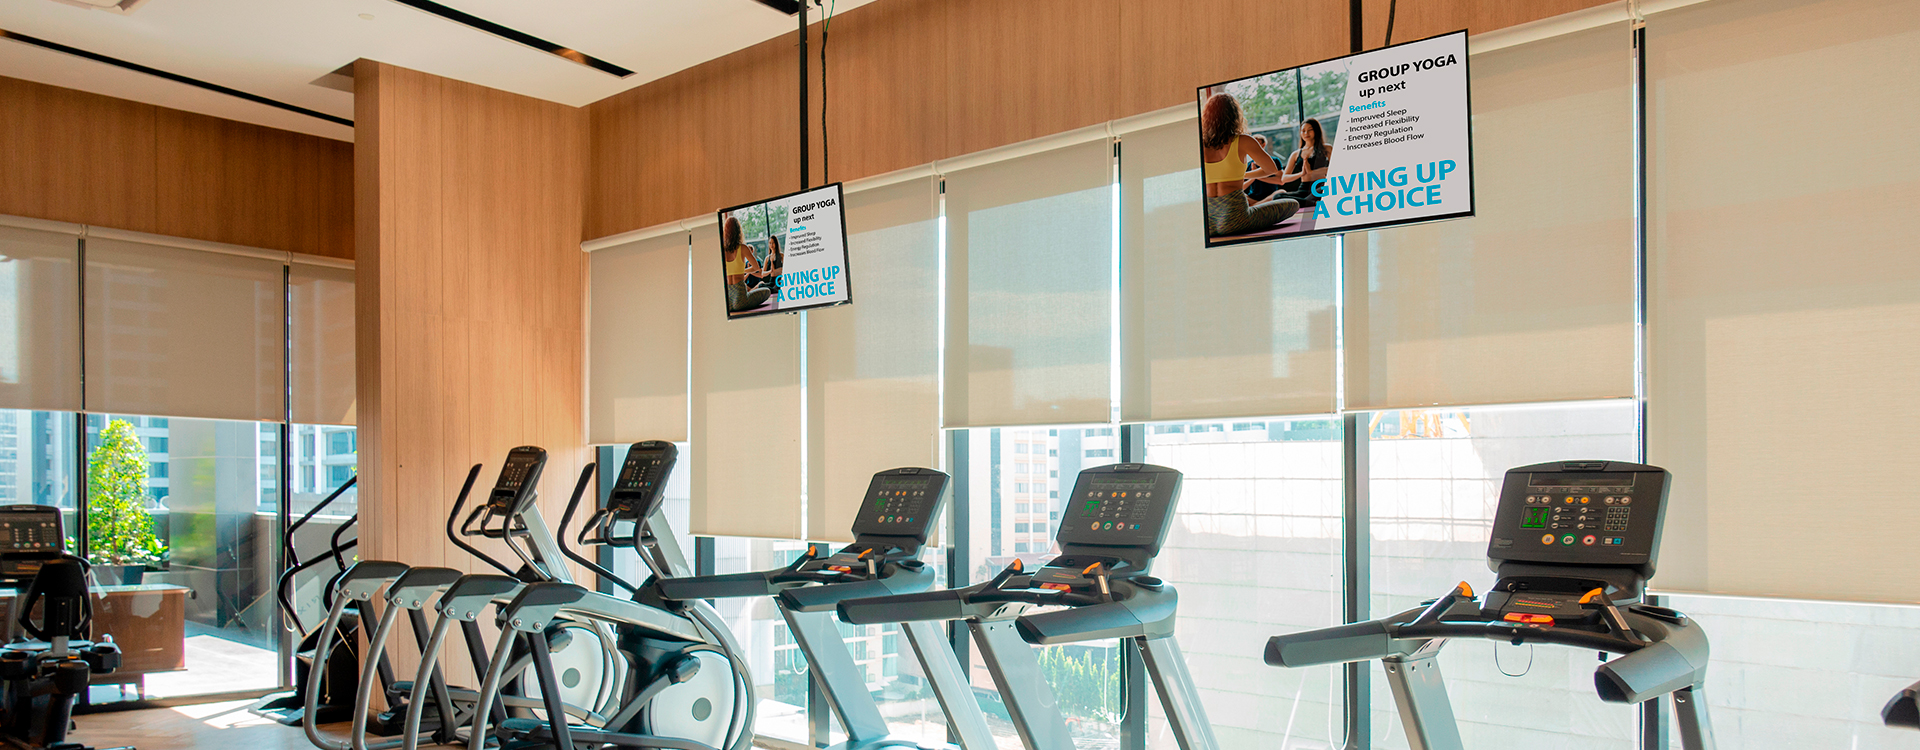 digital signage displays in gym